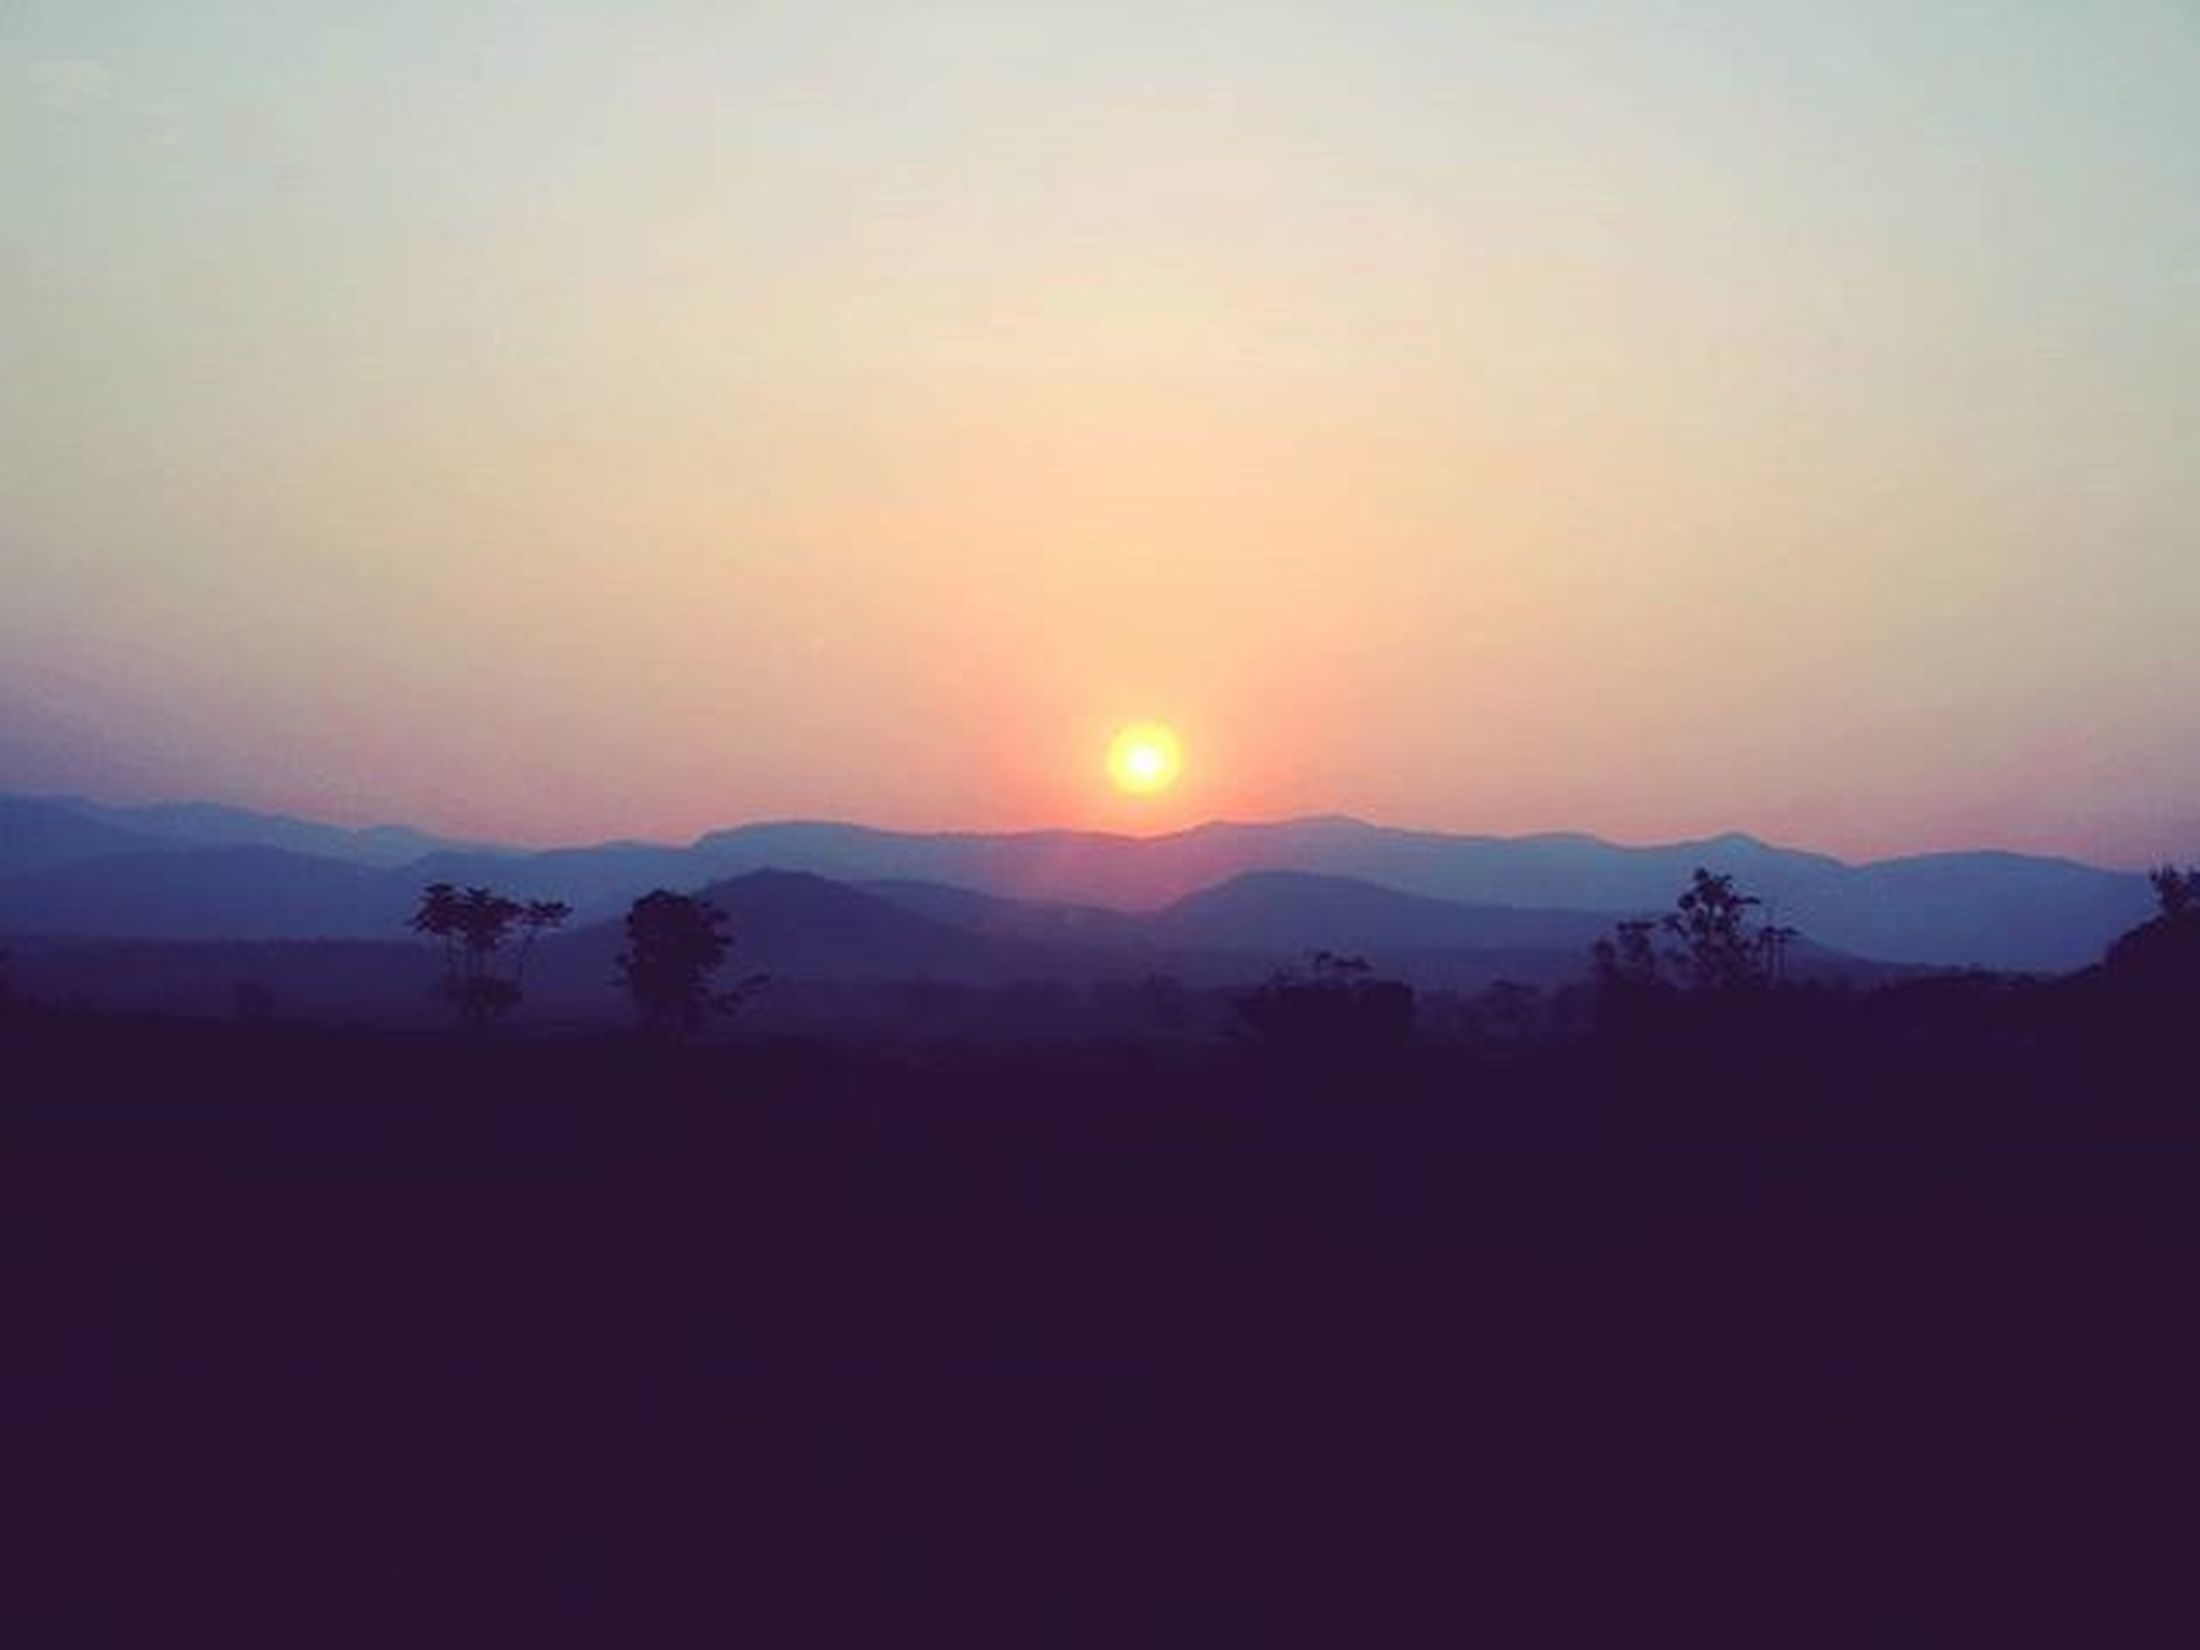 Sunrise @ sathyamangalam forest (veerapan's home)!!! 😂 Good Morning Sunrise Early Day Awesome Place Beautiful View Amazing Scenery Lovely Sky Sathyamangalam Forest Mysore Hills Nature Love Travel Business Trip Buddy Goodvibes Wanderlust memories throwback car ride fun